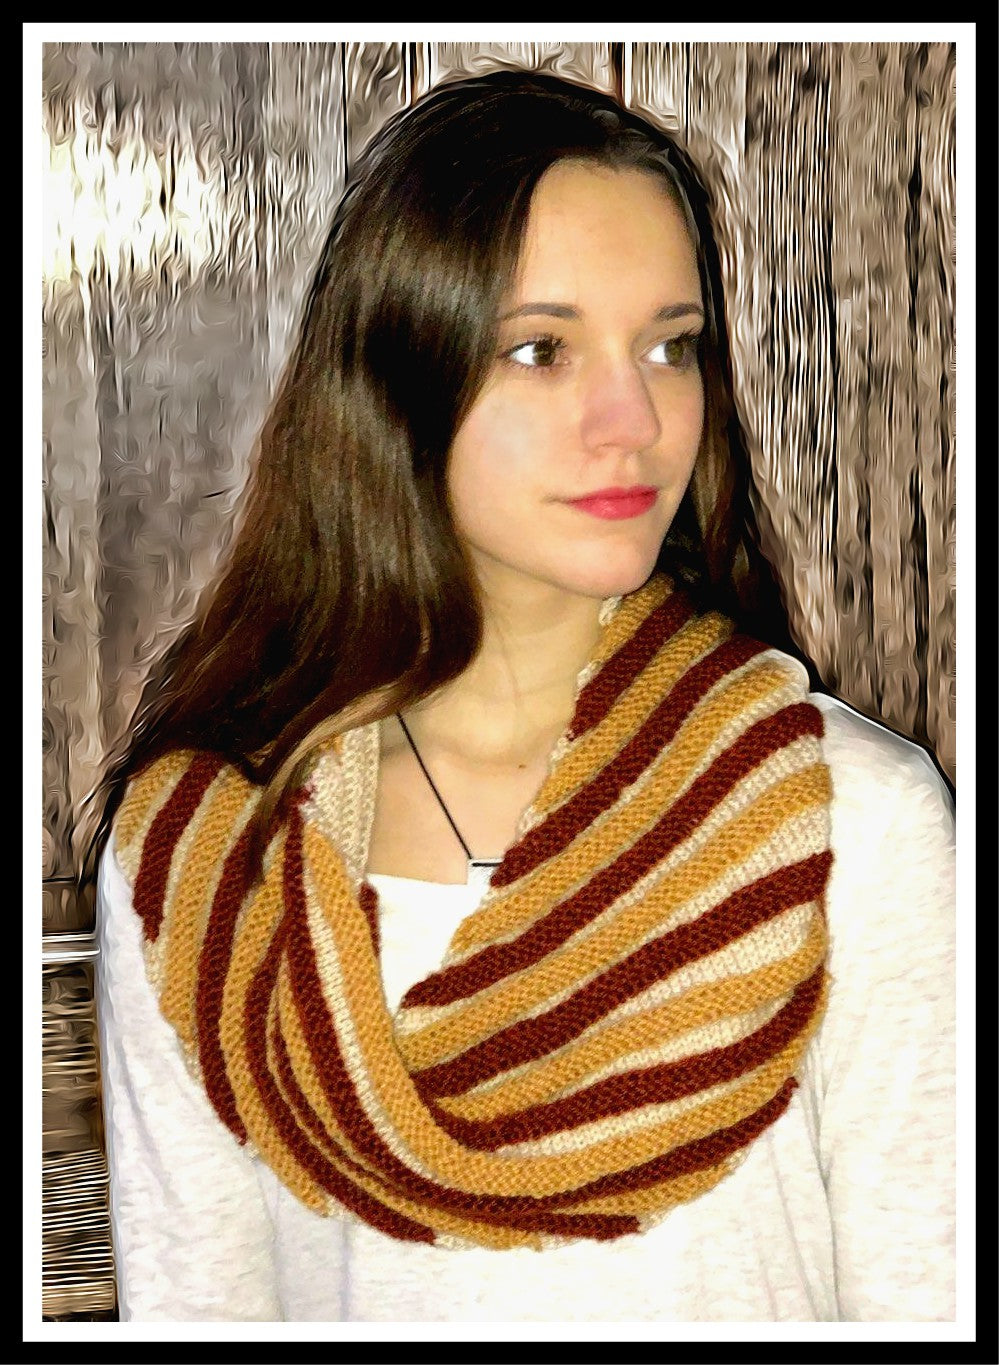 Bias Stripe Cowl - Designed by Clara Masessa